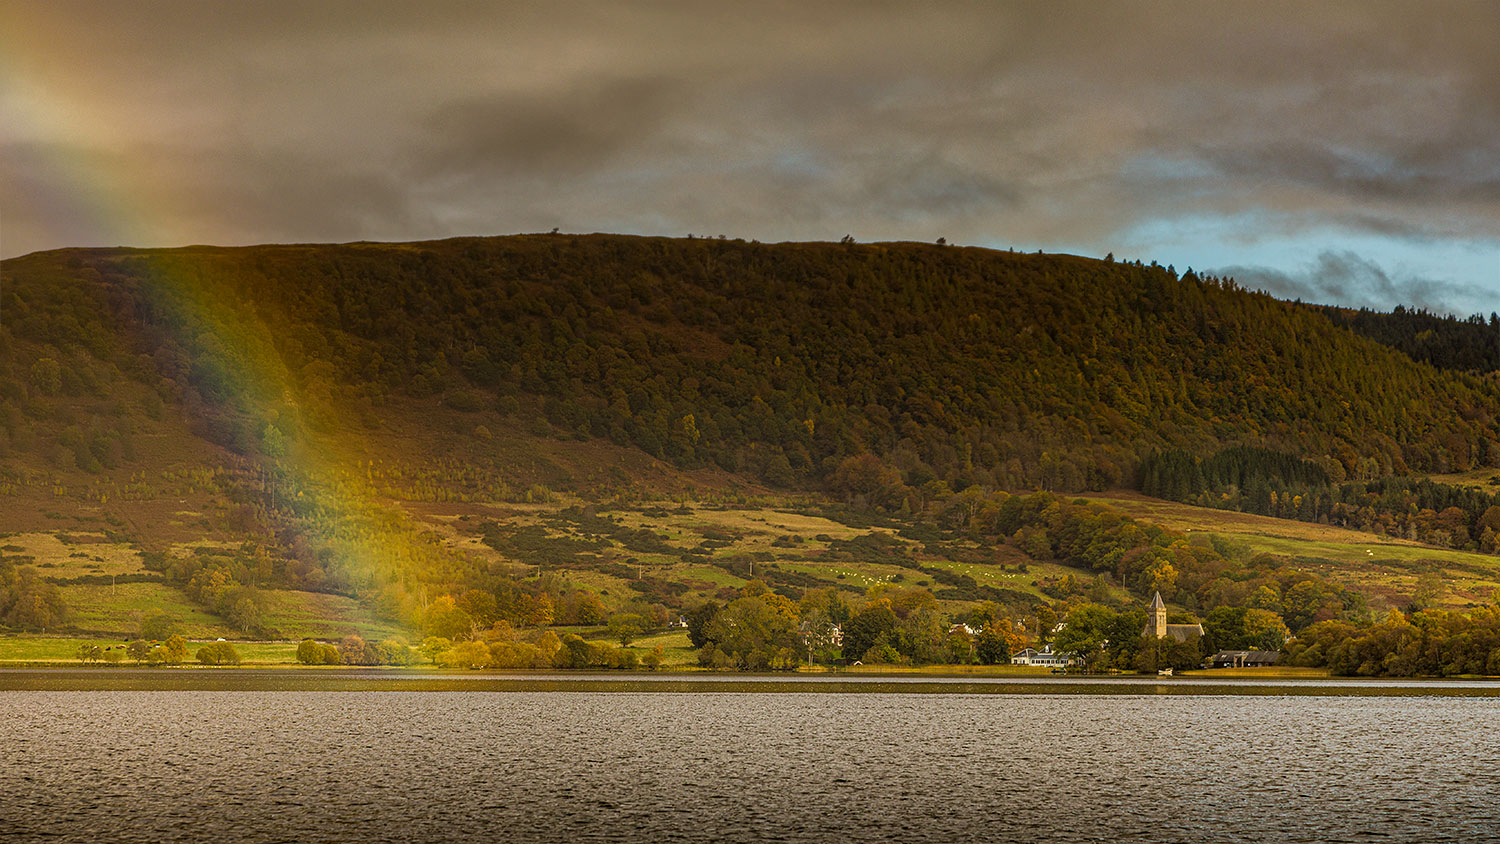 Menteith16Oct20_4383-HDR.jpg